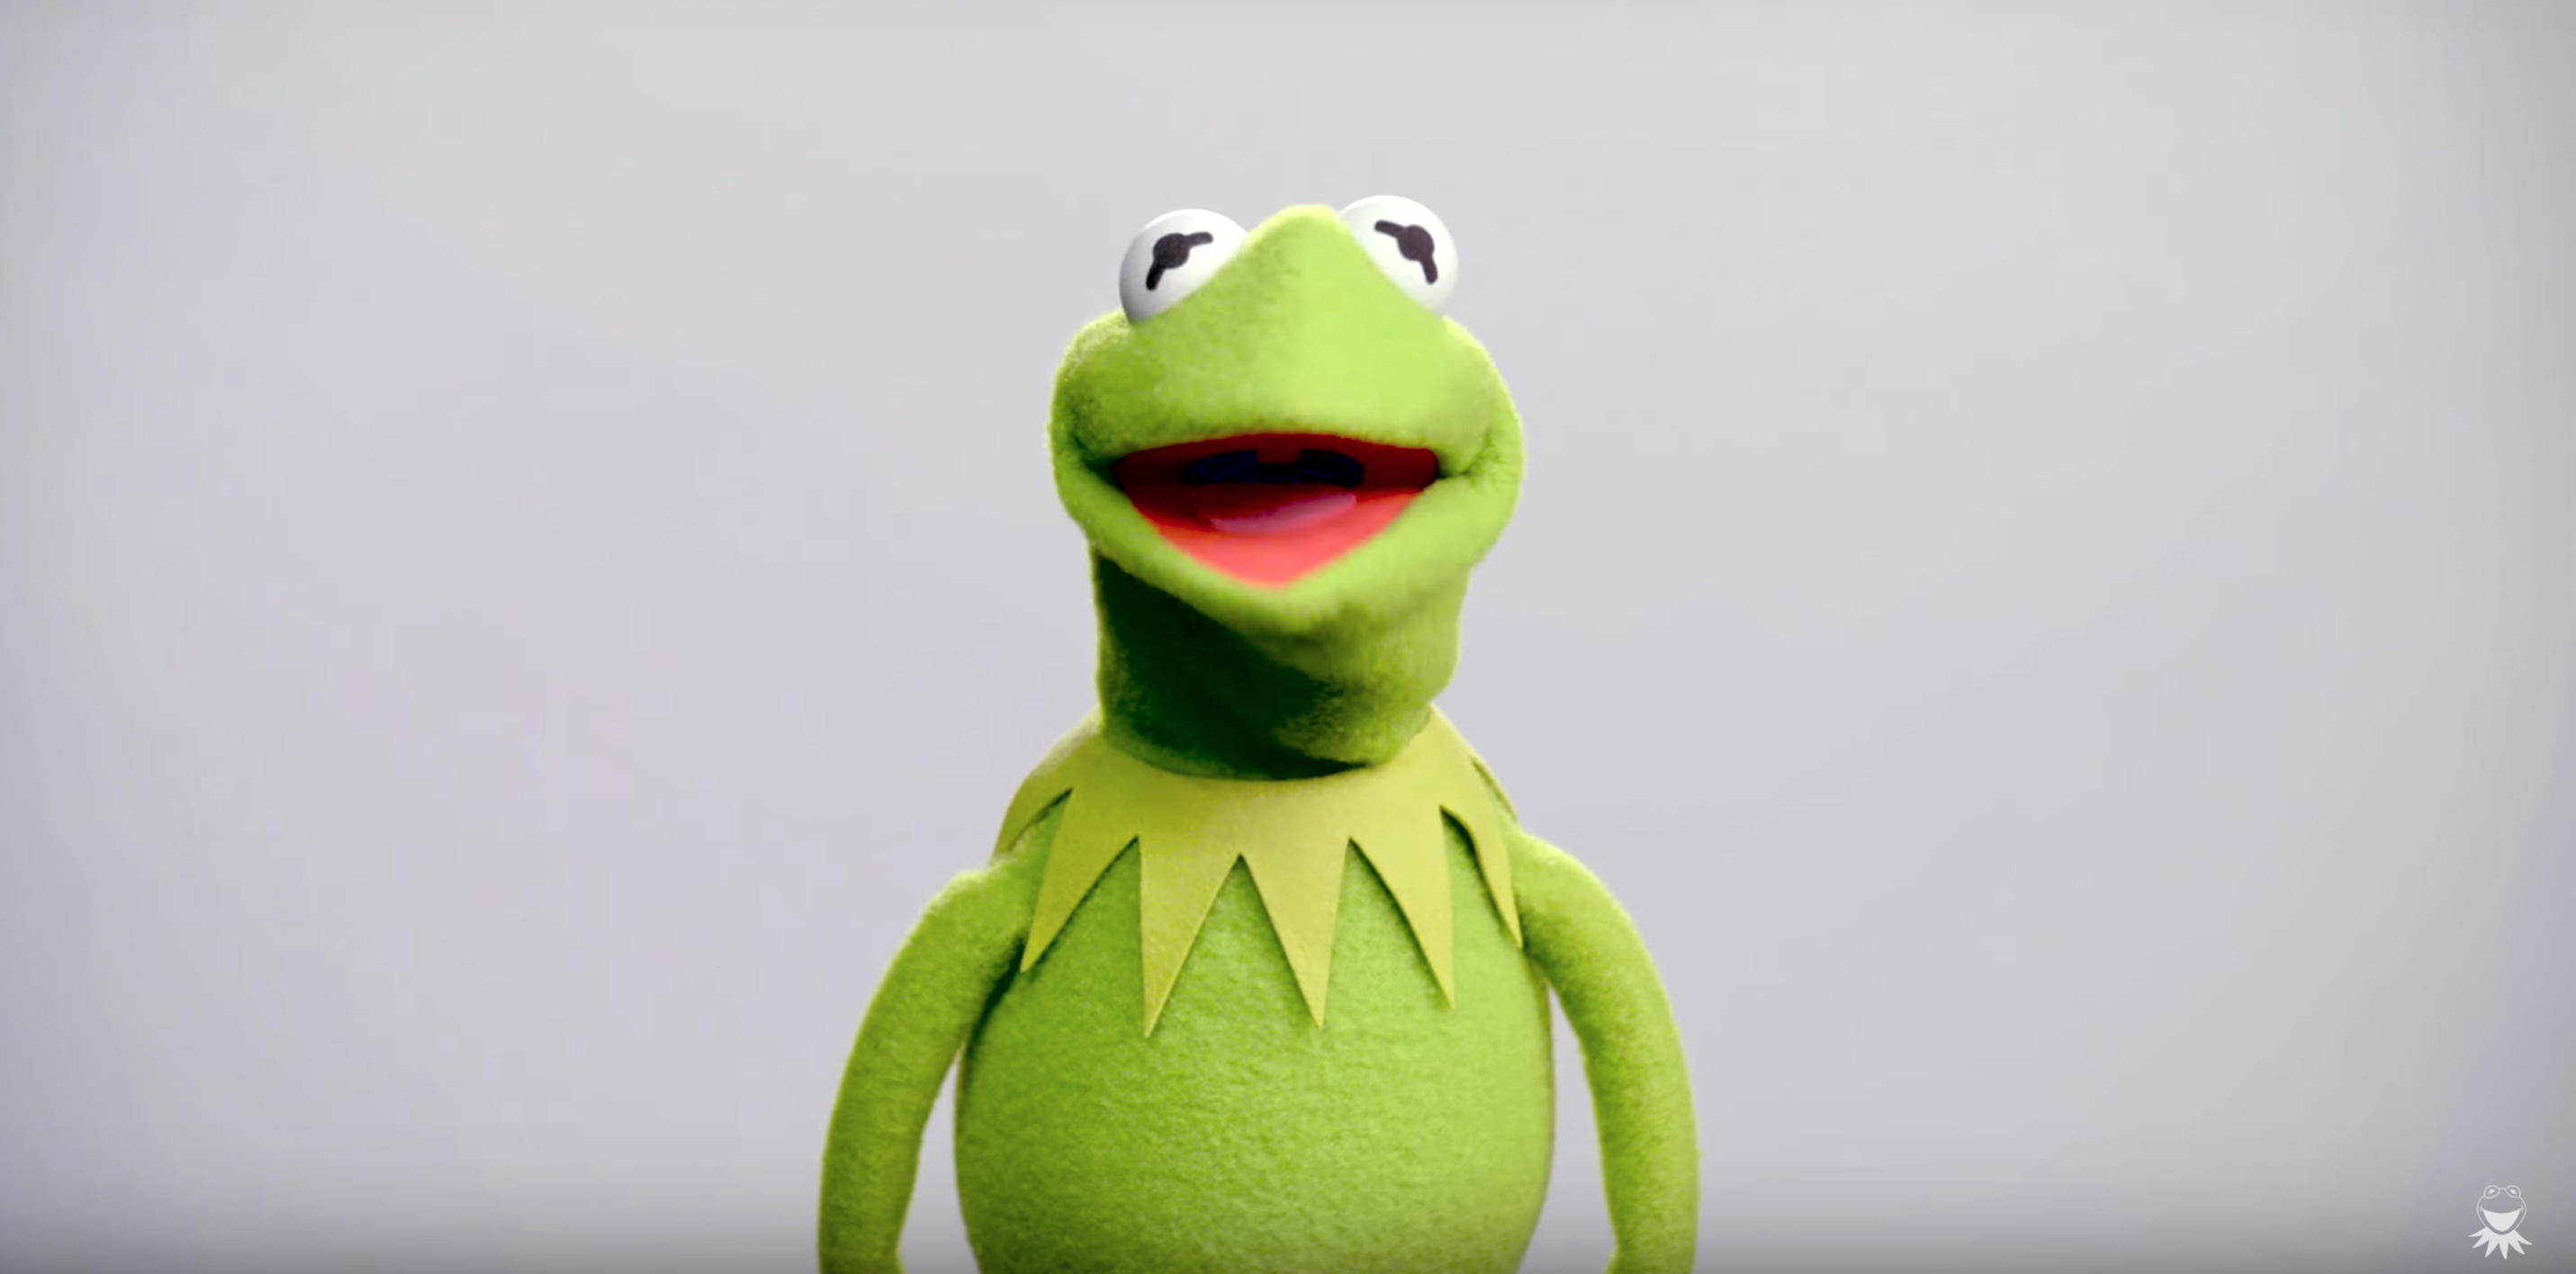 The Muppets are going unscripted in their own Disney+ short form series